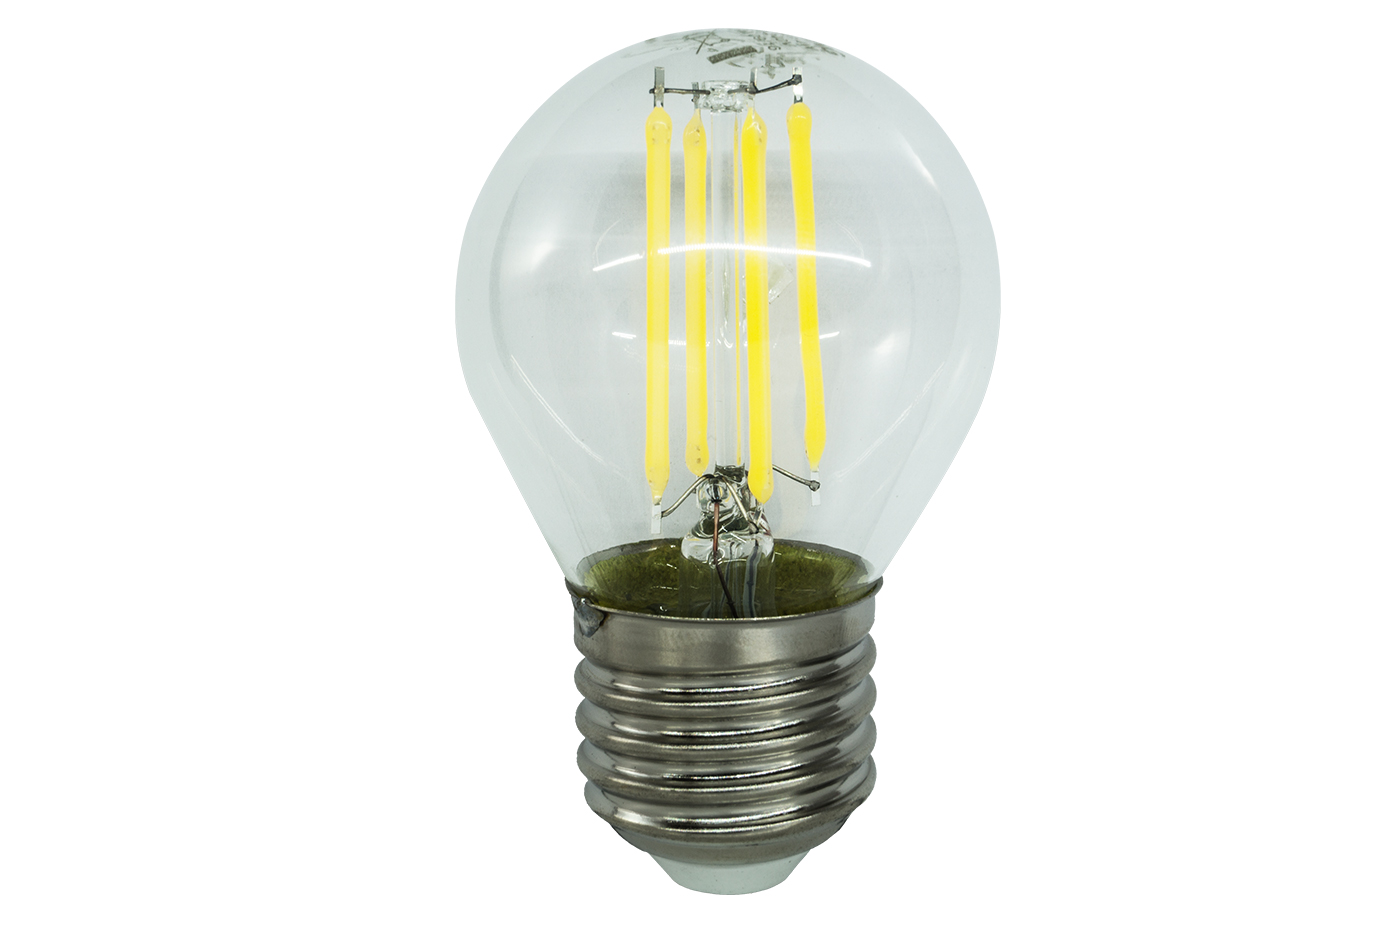 LAMP LED FILAMENTO 4W E27 MINI GLOBO G45 VETRO DIMMERABILE KODAK 41121-EU-2700